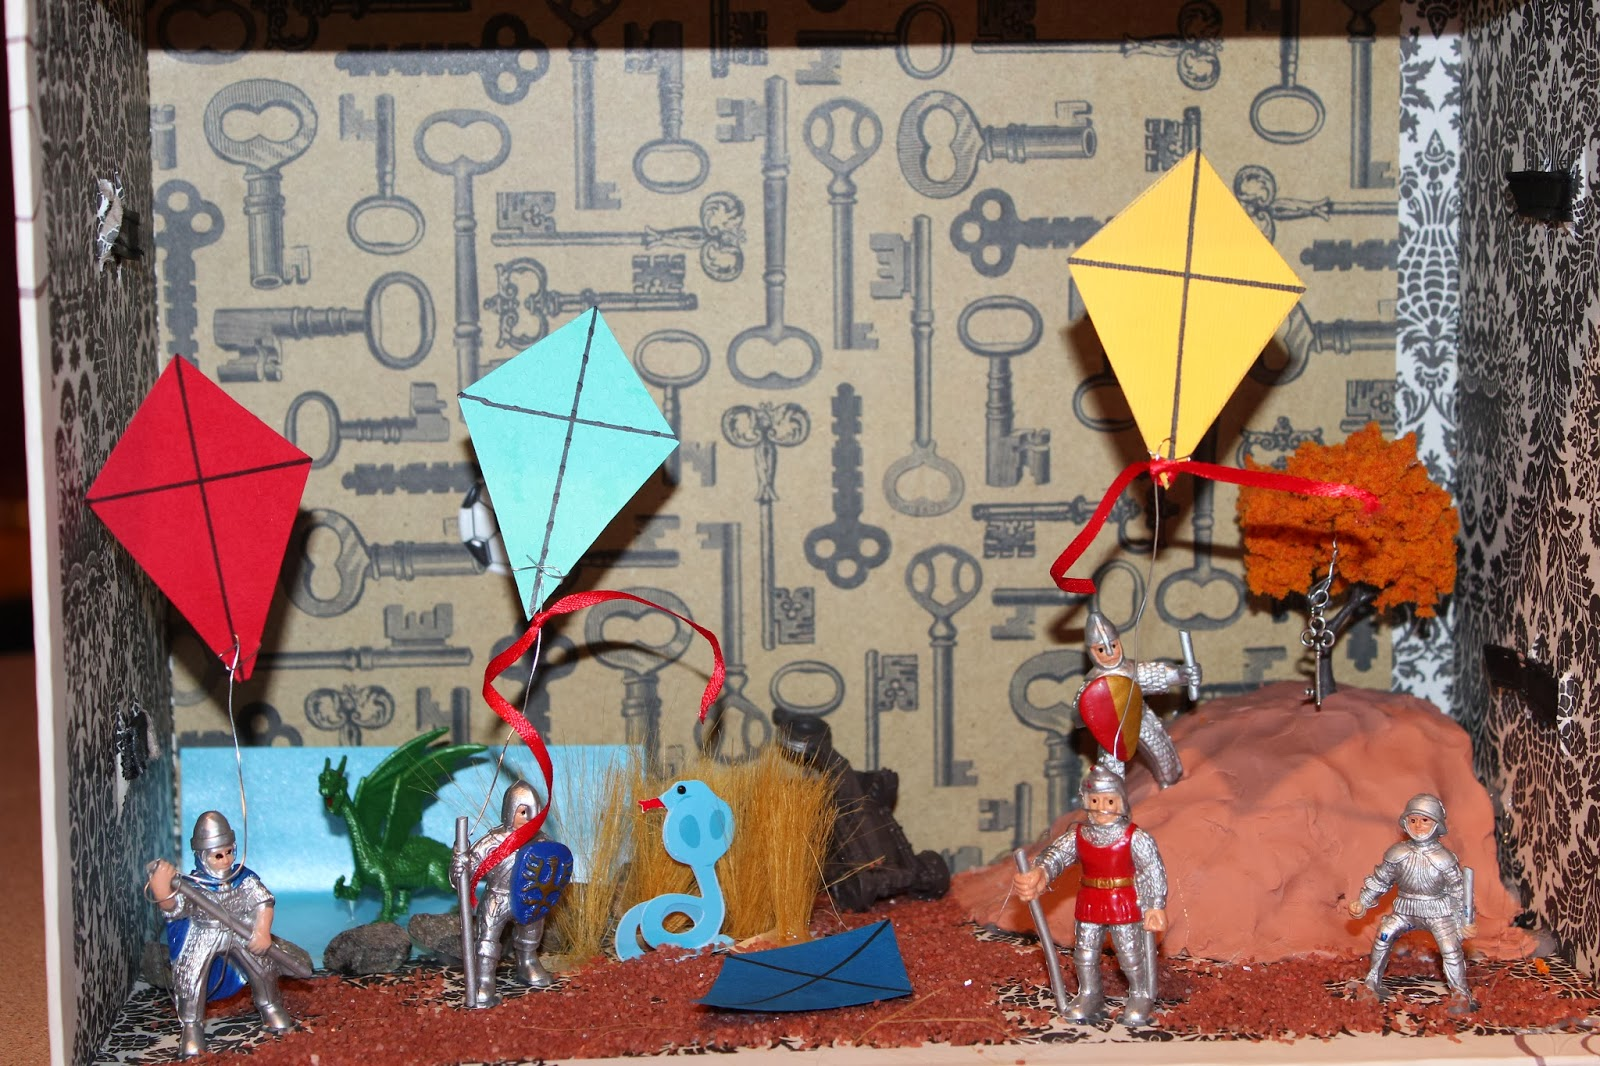 english 11 honours 2013 14 2014 for my creative project i decided to create a symbolic diorama of a crucial scene in the kite runner the scene i chose was the day of the kite fighting